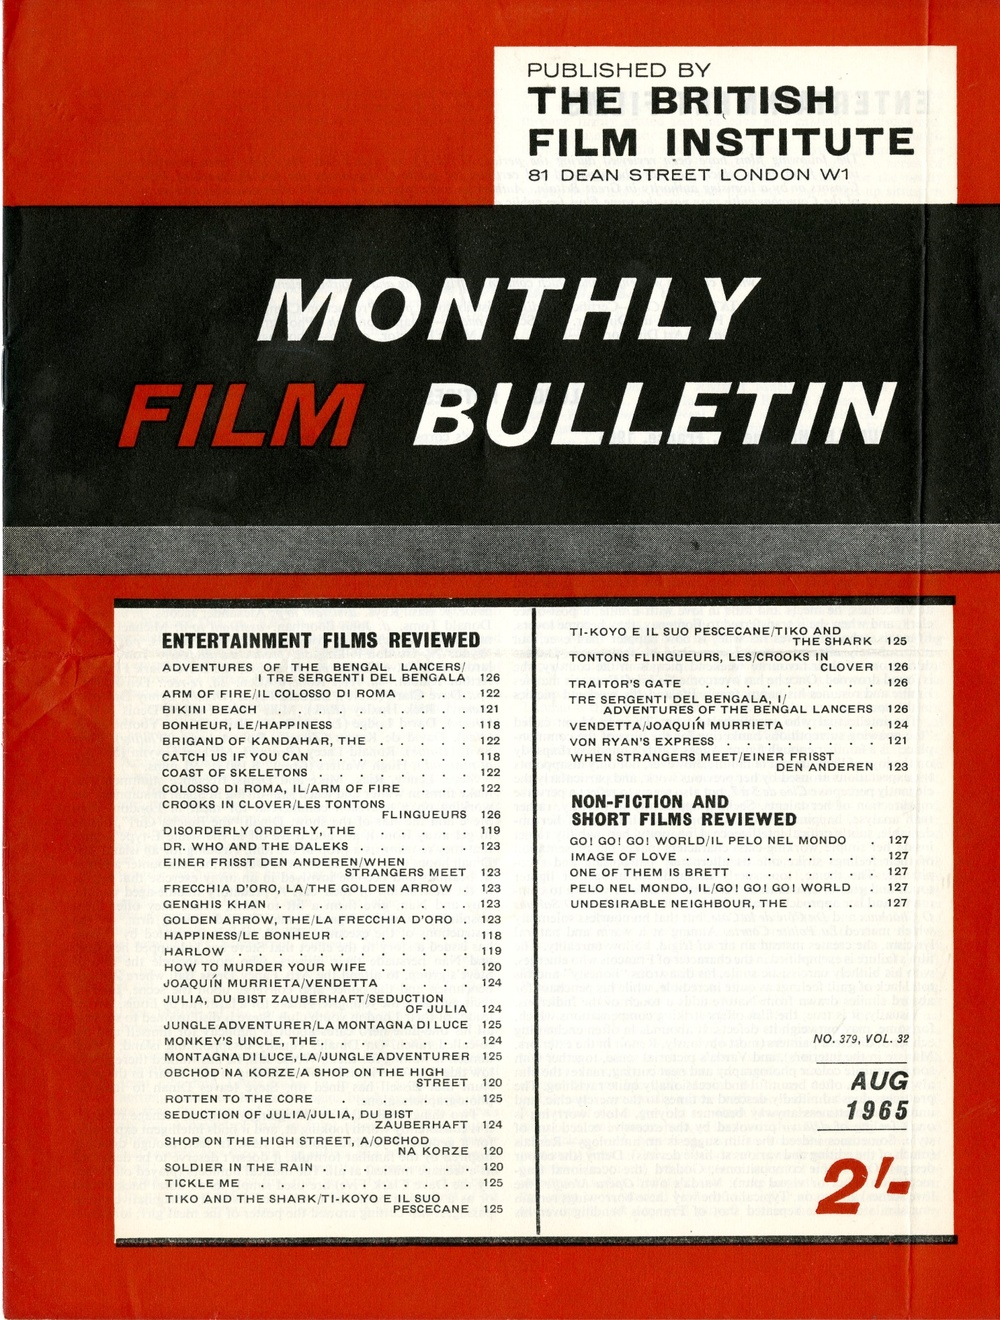 British Film Institute Monthly Film Bulletin, August 1965